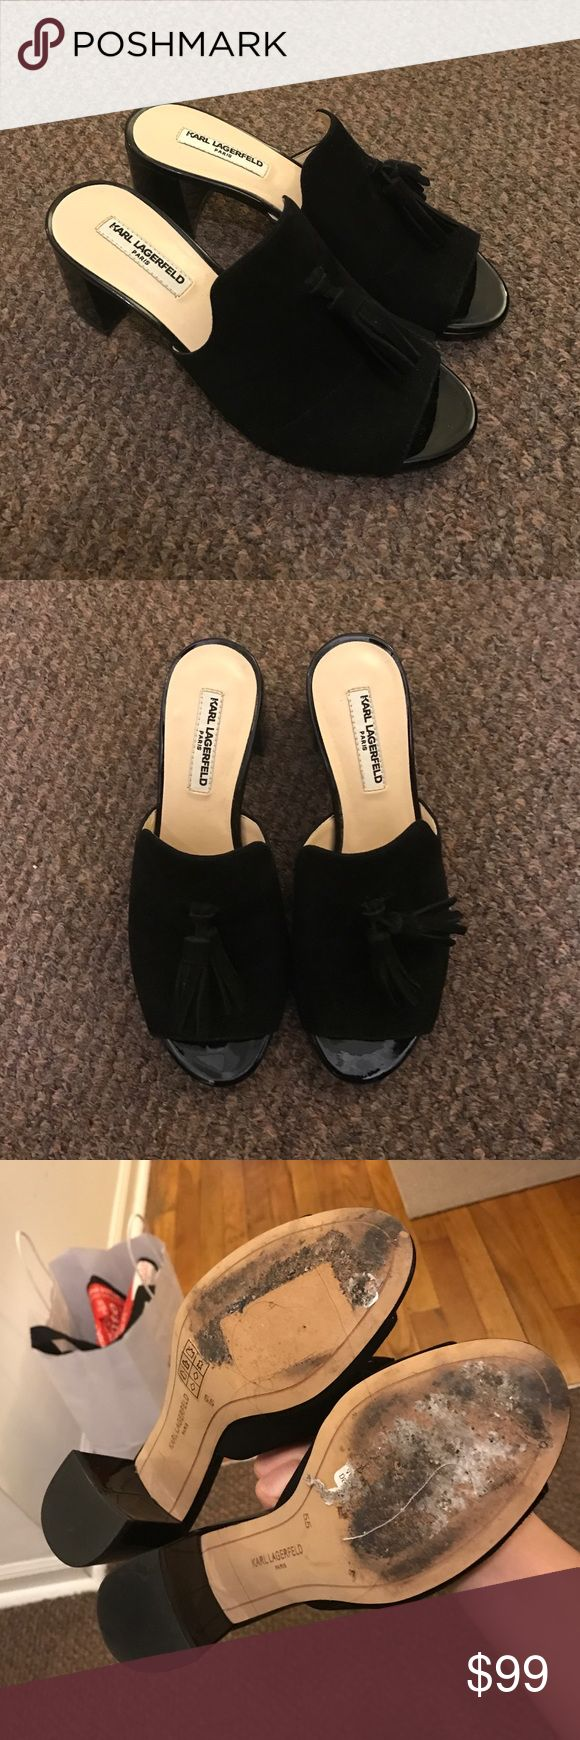 """Karl Lagerfeld Mules Size: 5.5; suede leather with tassel embellishment; block heel; about 2"""" height; worn twice! Karl Lagerfeld Shoes Mules & Clogs"""